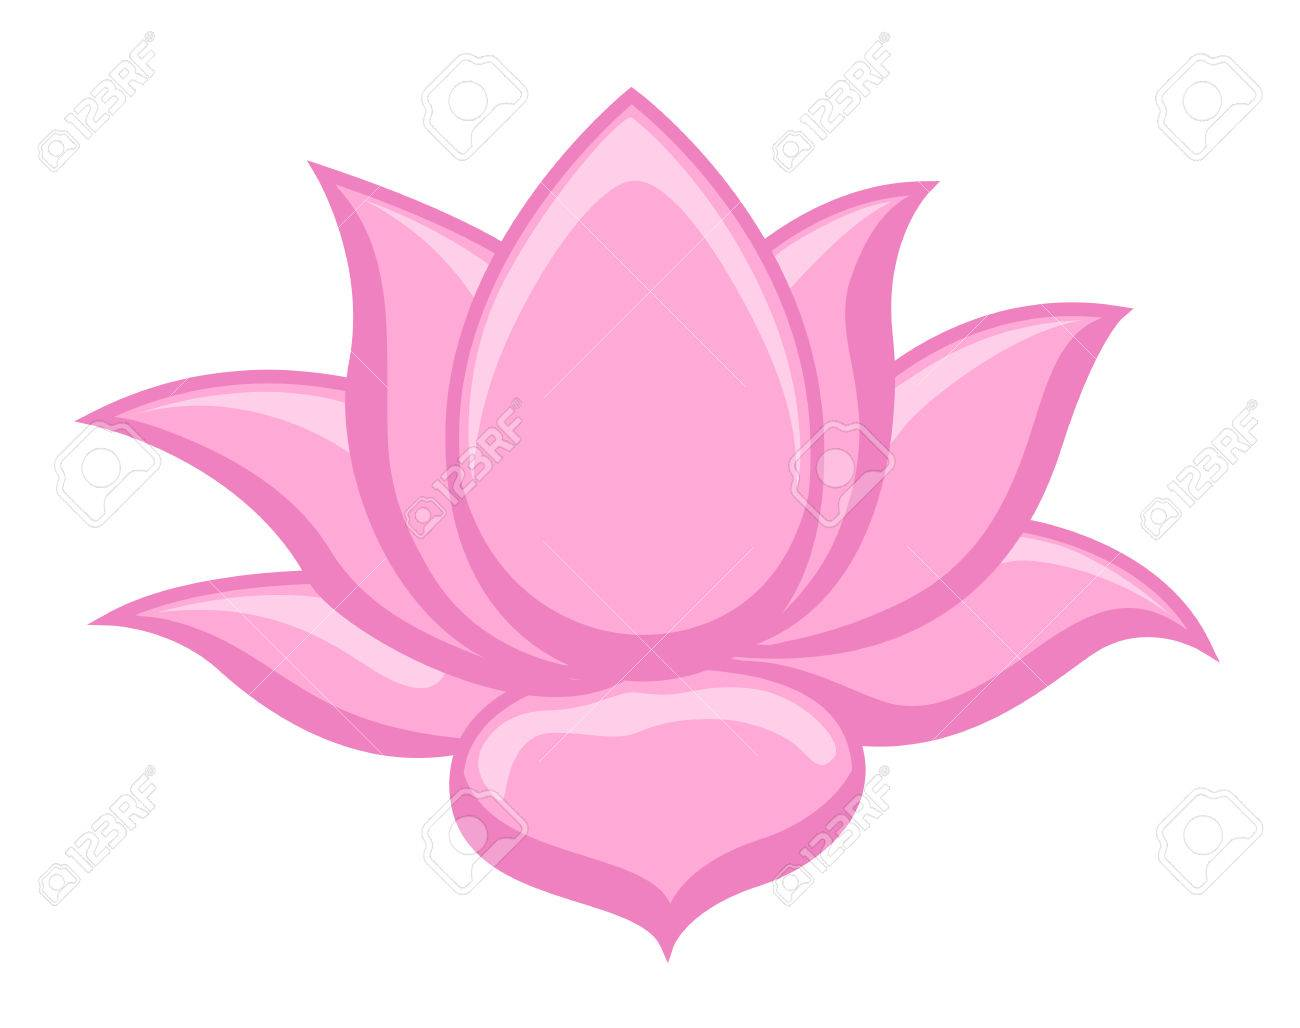 Lotus Flower Images Clipart Daily Health